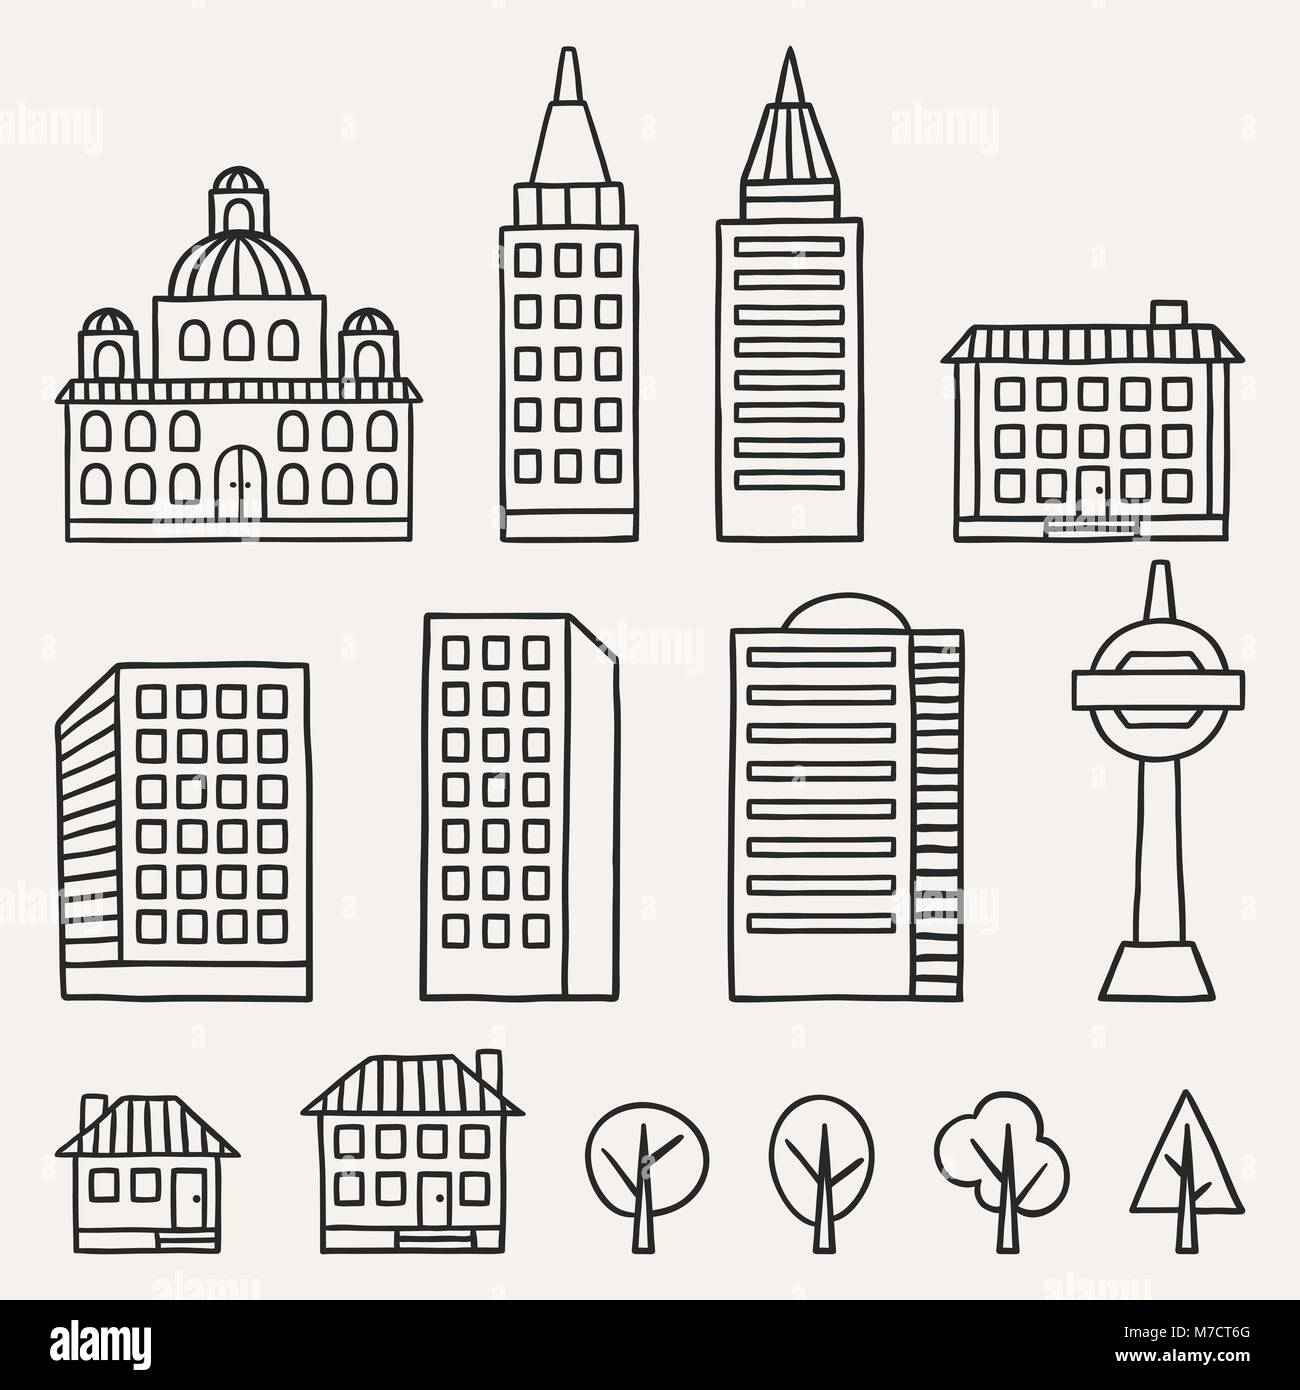 Set of hand drawn houses for town illustration - Stock Vector